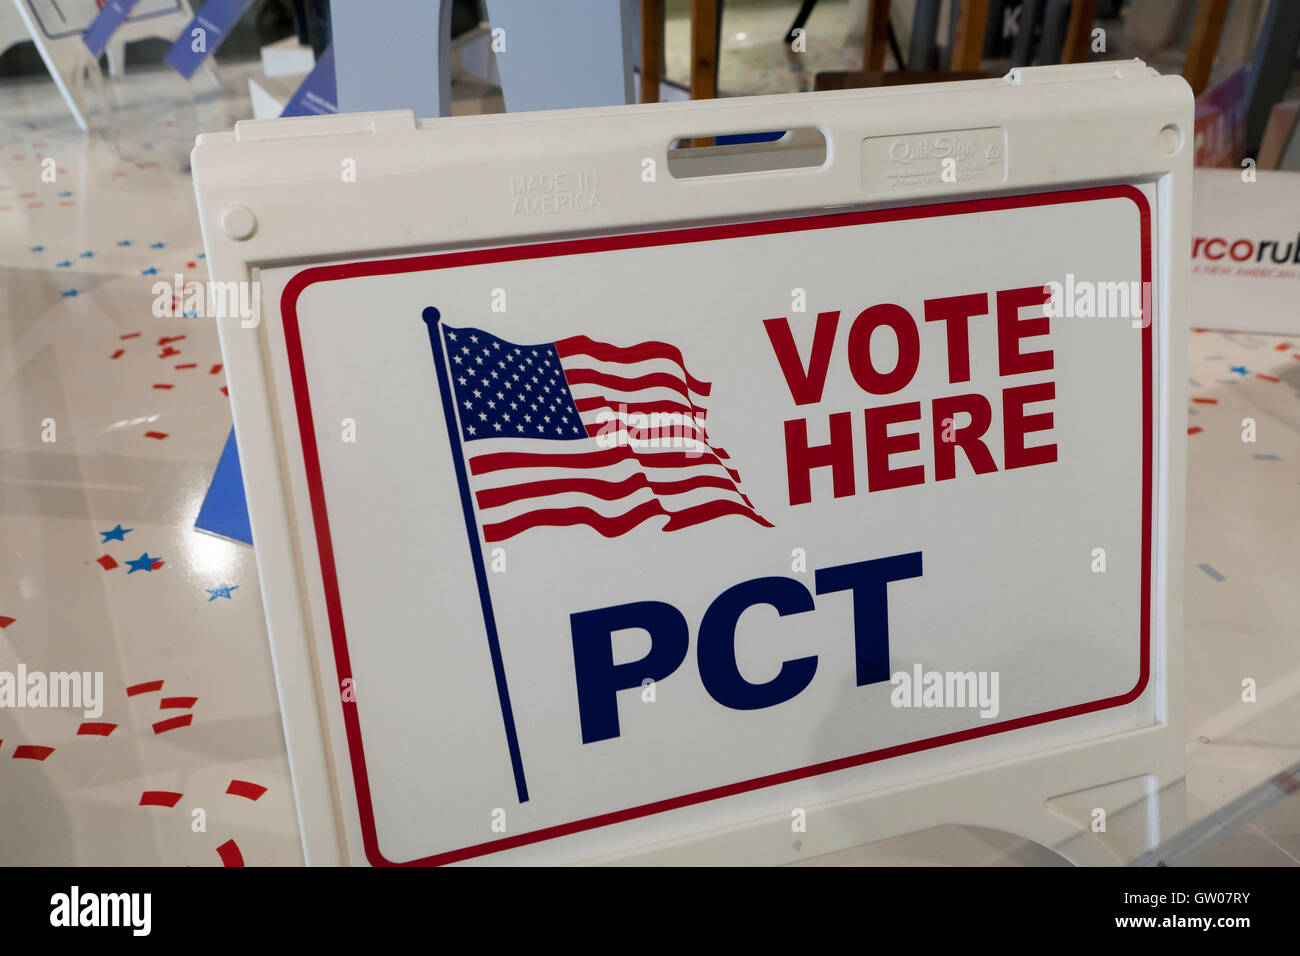 Vote Here sign - USA - Stock Image